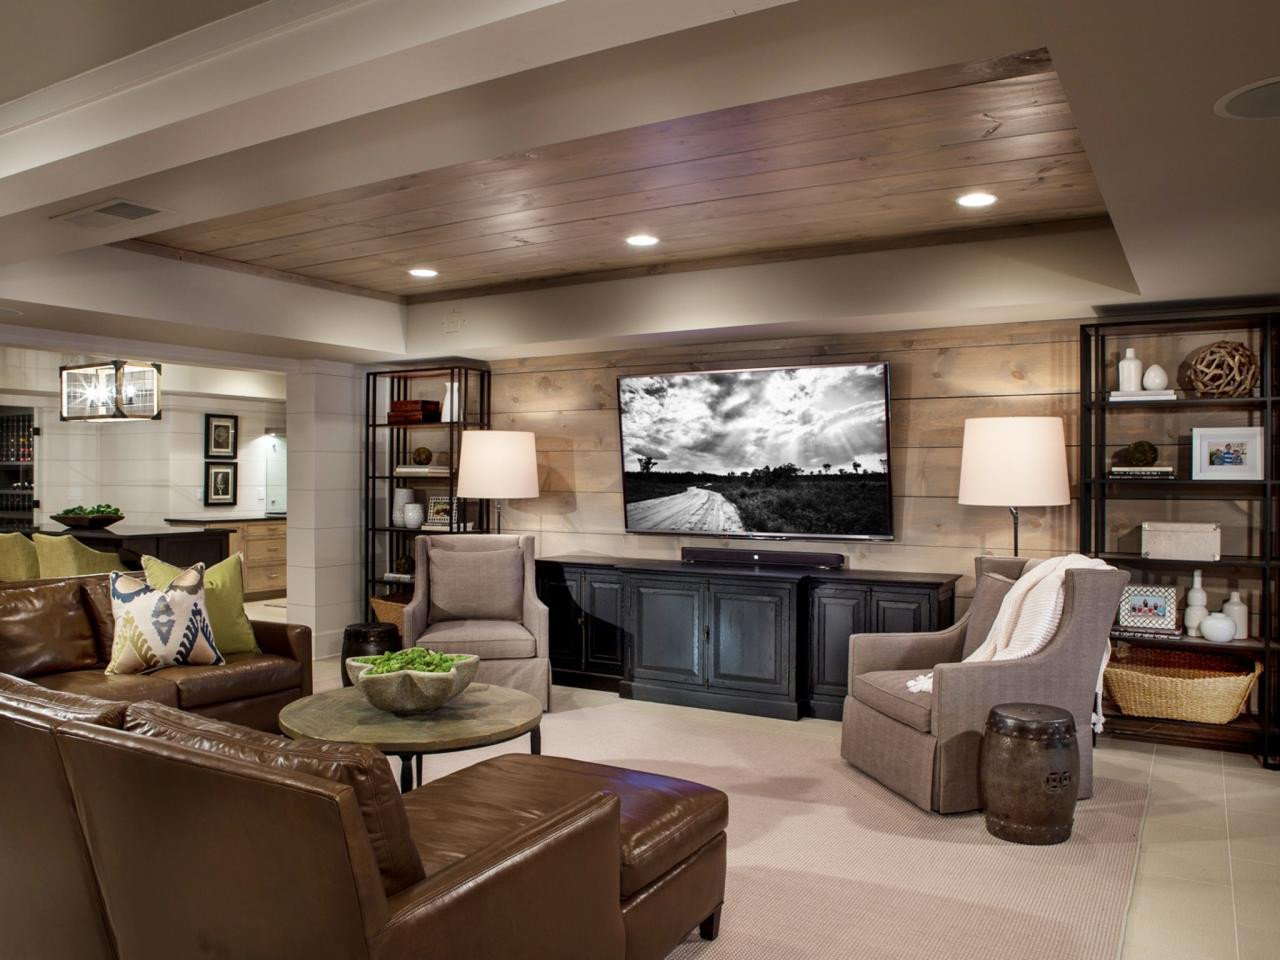 Awesome Small Living Room Ideas Ideas to Decorate A Living Room theaters